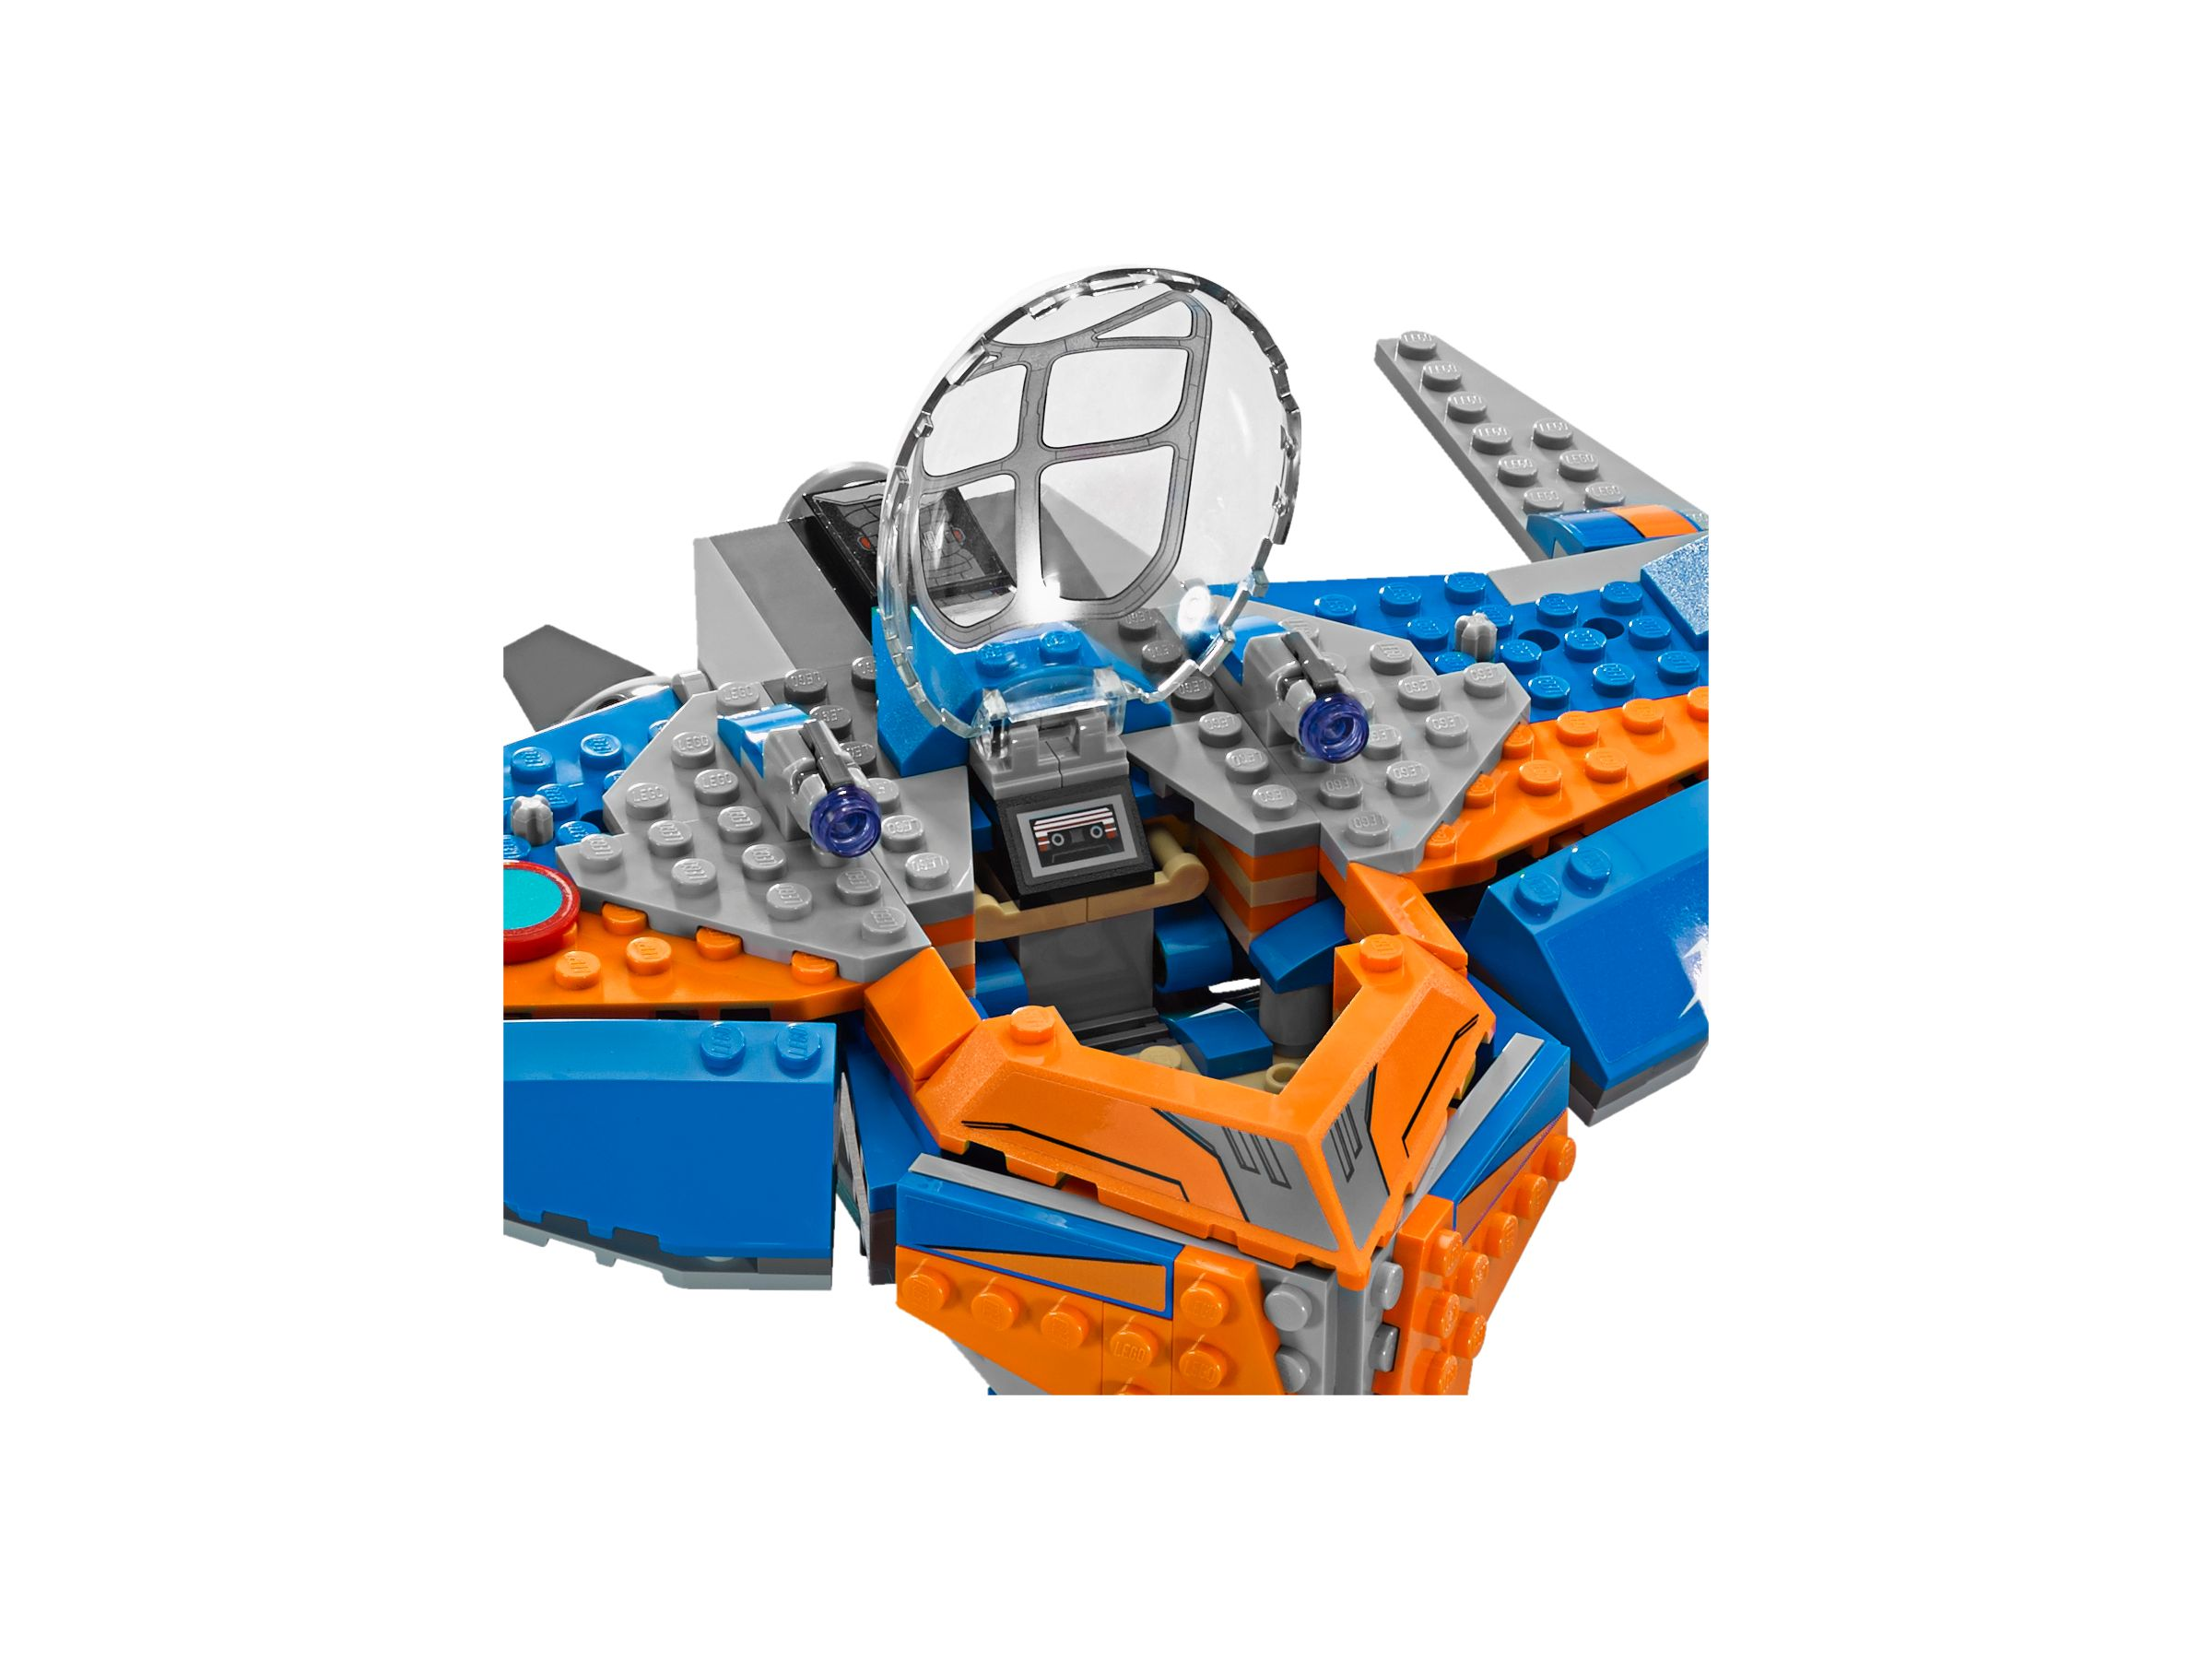 LEGO Super Heroes 76081 Guardians of the Galaxy - The Milano vs. The Abilisk LEGO_76081_alt4.jpg